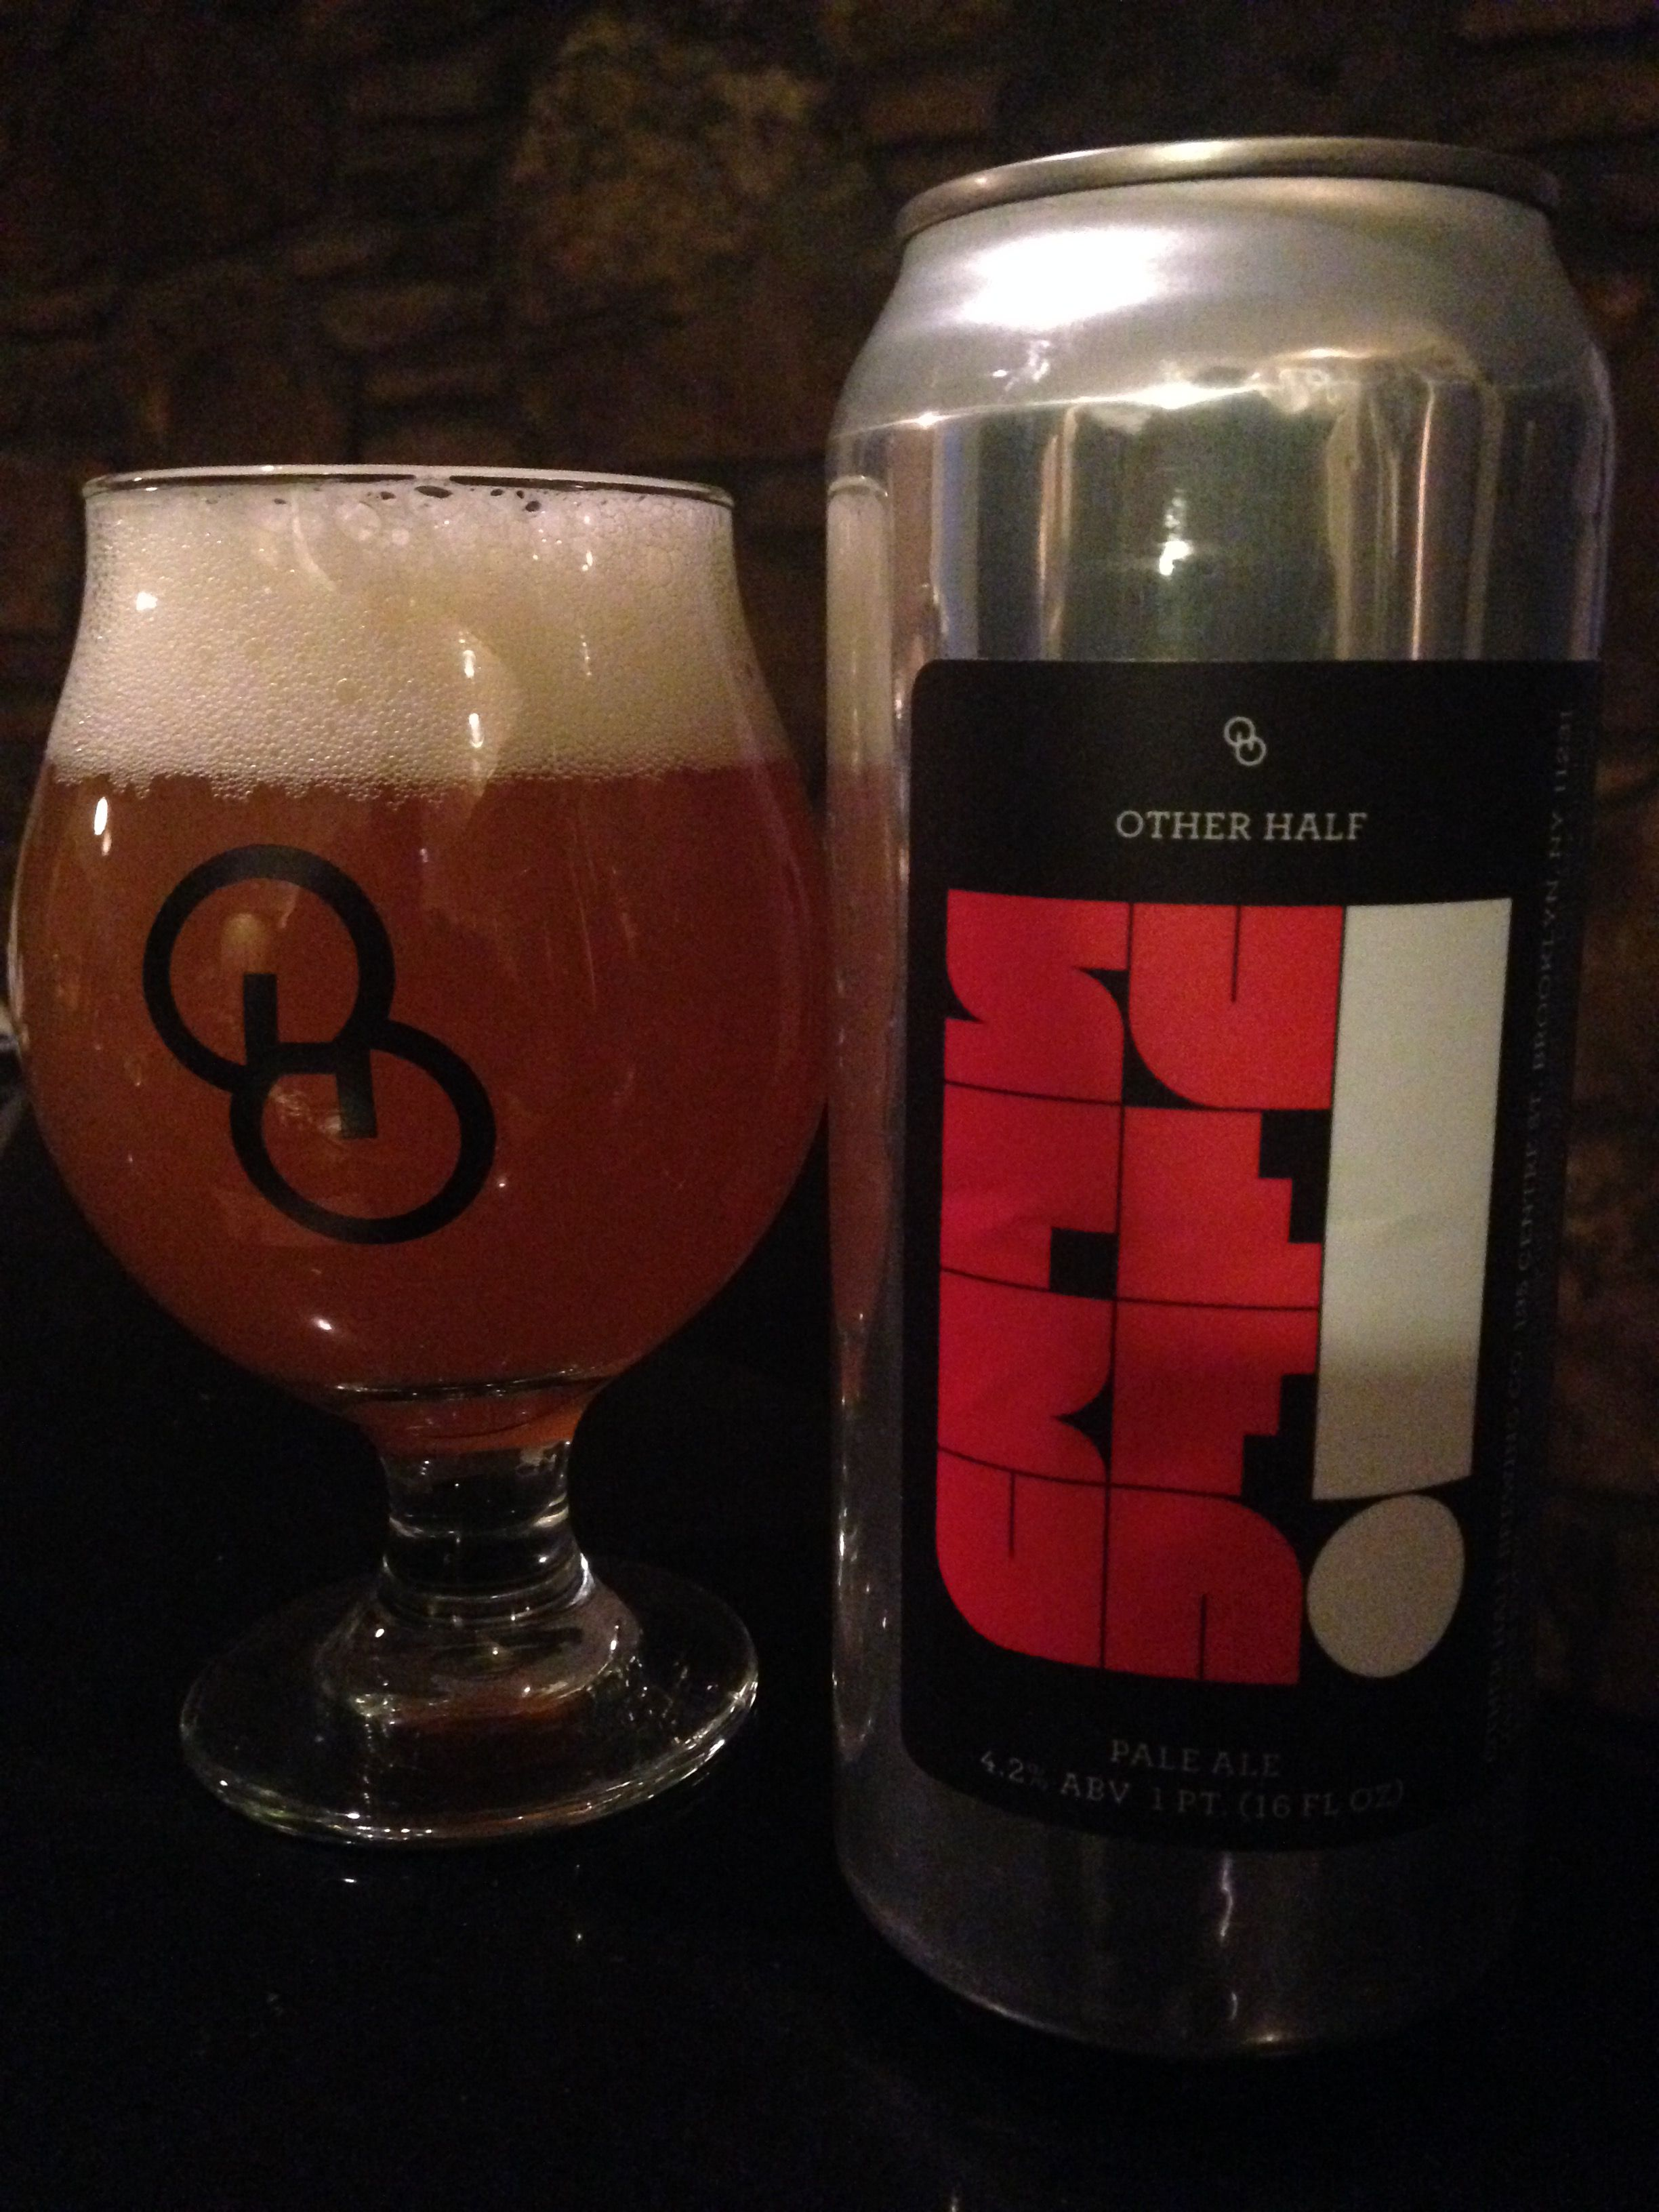 Superfun Session Ipa From Other Half Brewing Co Craft Beer Beer Label Beer